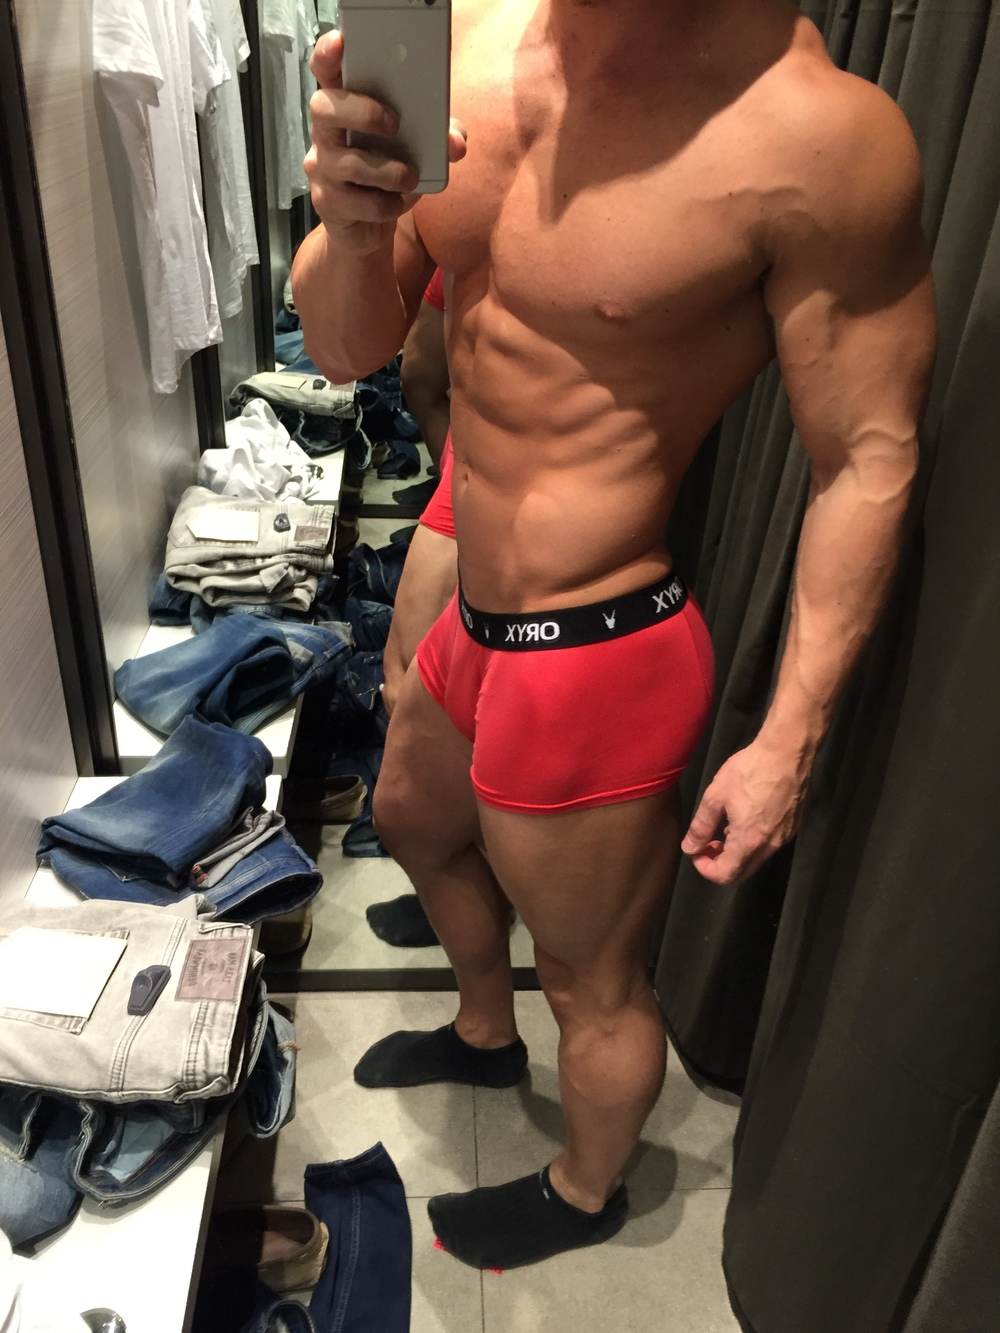 Vinny Lawdenski shopping for some jeans in the Oryx Sport Trunk